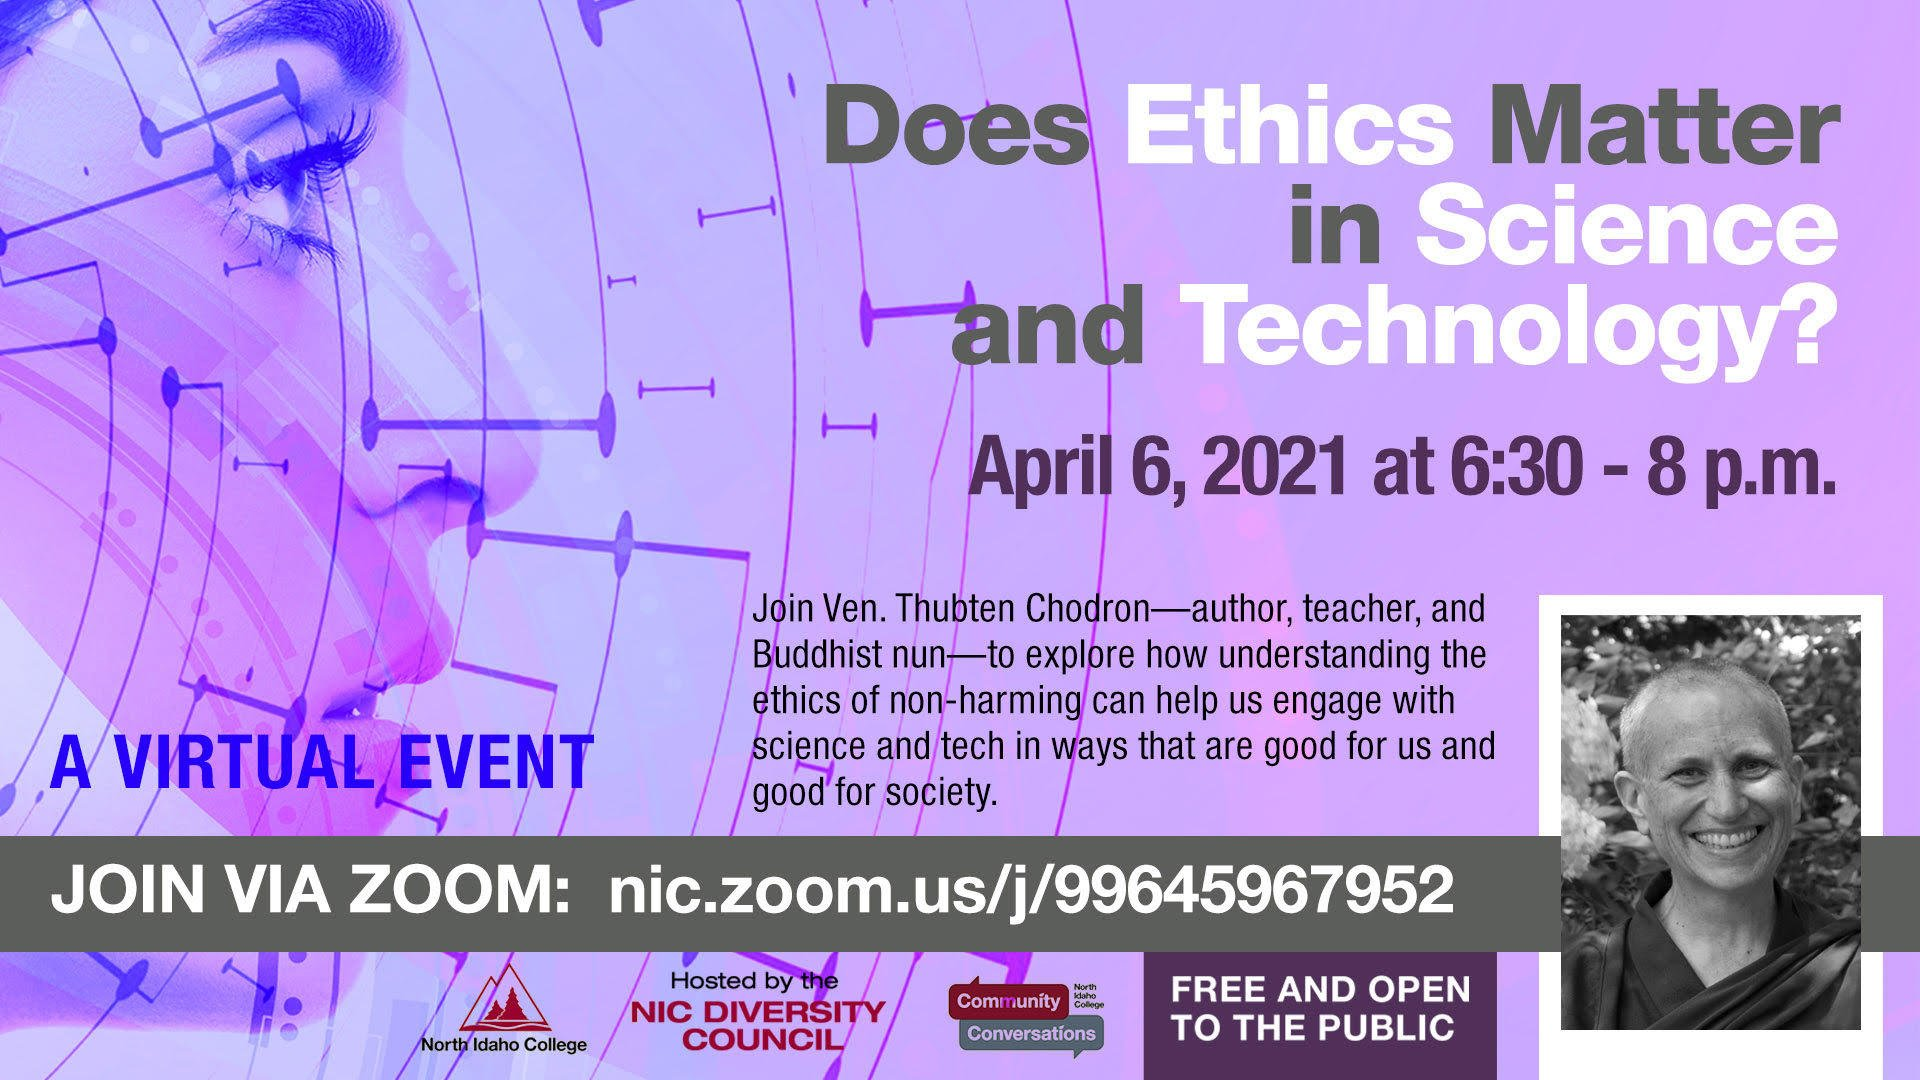 Flier for Venerable Chodron's talk at North Idaho College (via Zoom) in April 2021